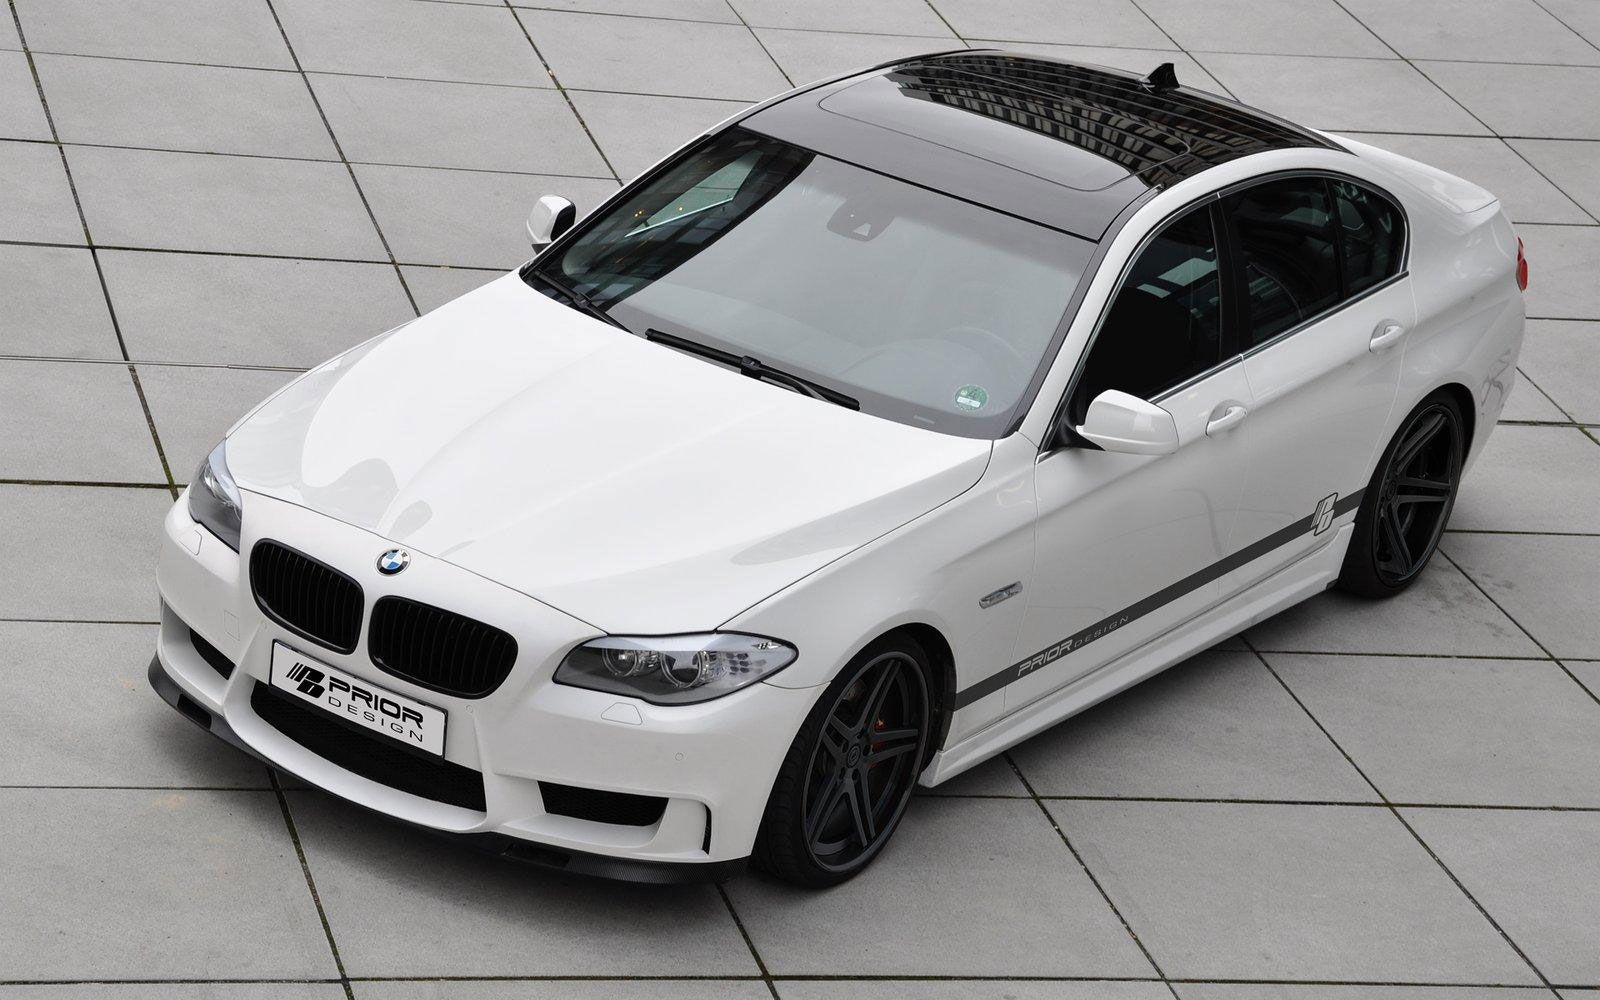 medium resolution of bmw 5 series white bmw 5 series wallpaper hd wallpapers